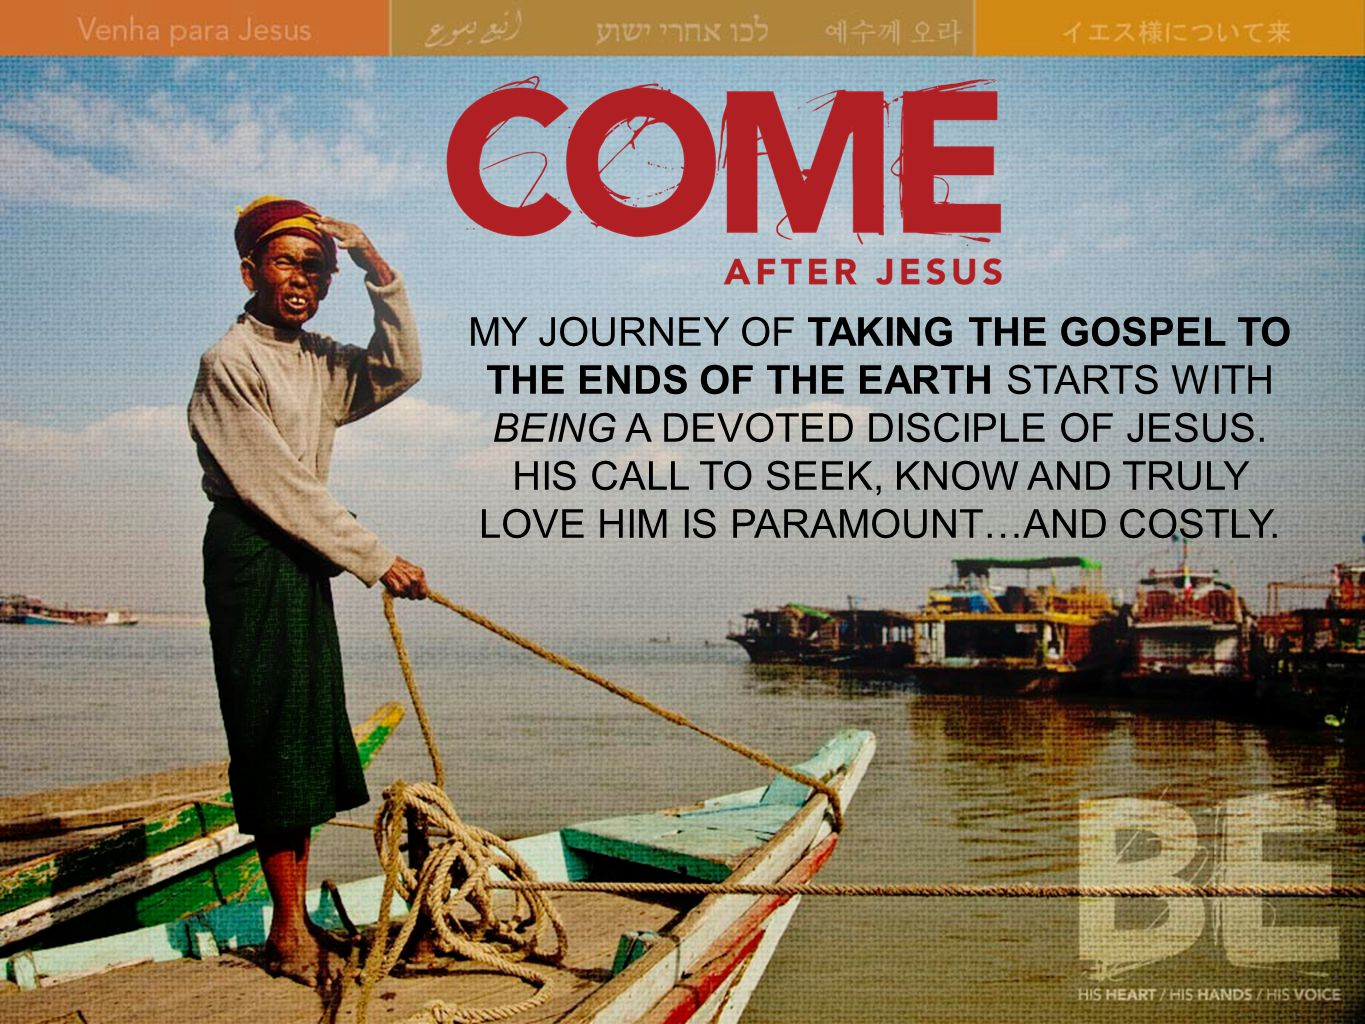 MY JOURNEY OF TAKING THE GOSPEL TO THE ENDS OF THE EARTH STARTS WITH BEING A DEVOTED DISCIPLE OF JESUS.